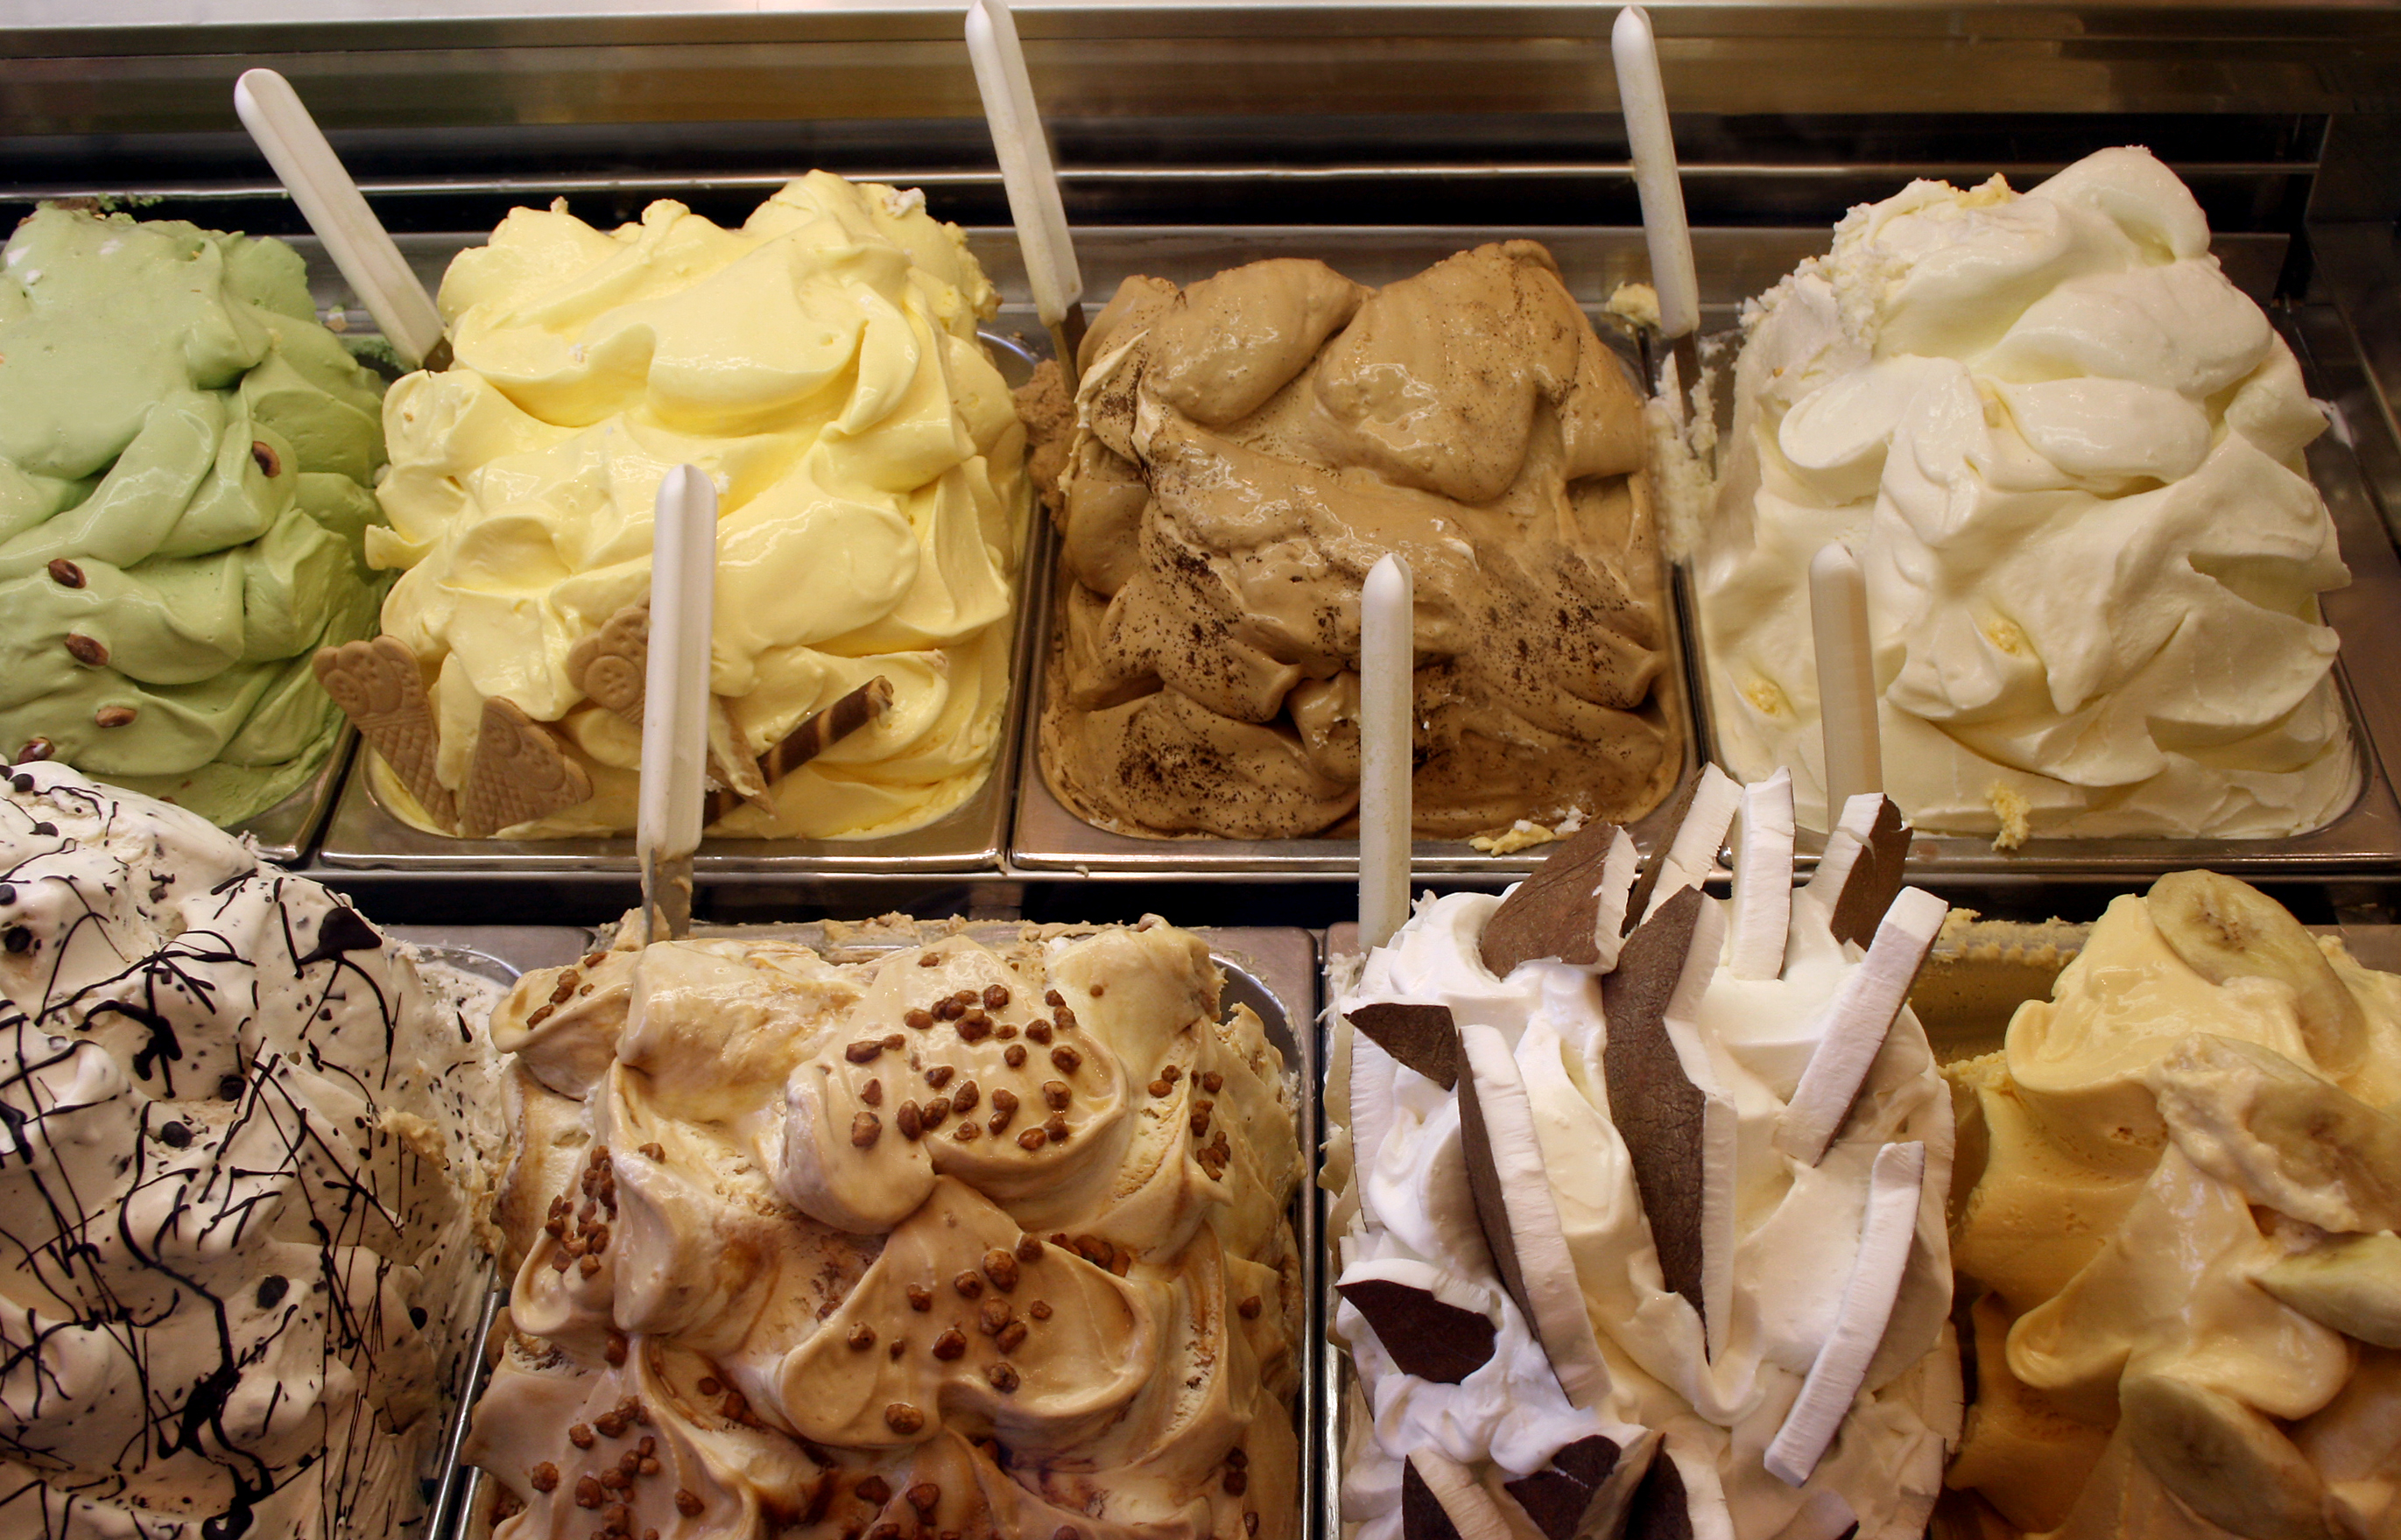 gelato-display-6905080